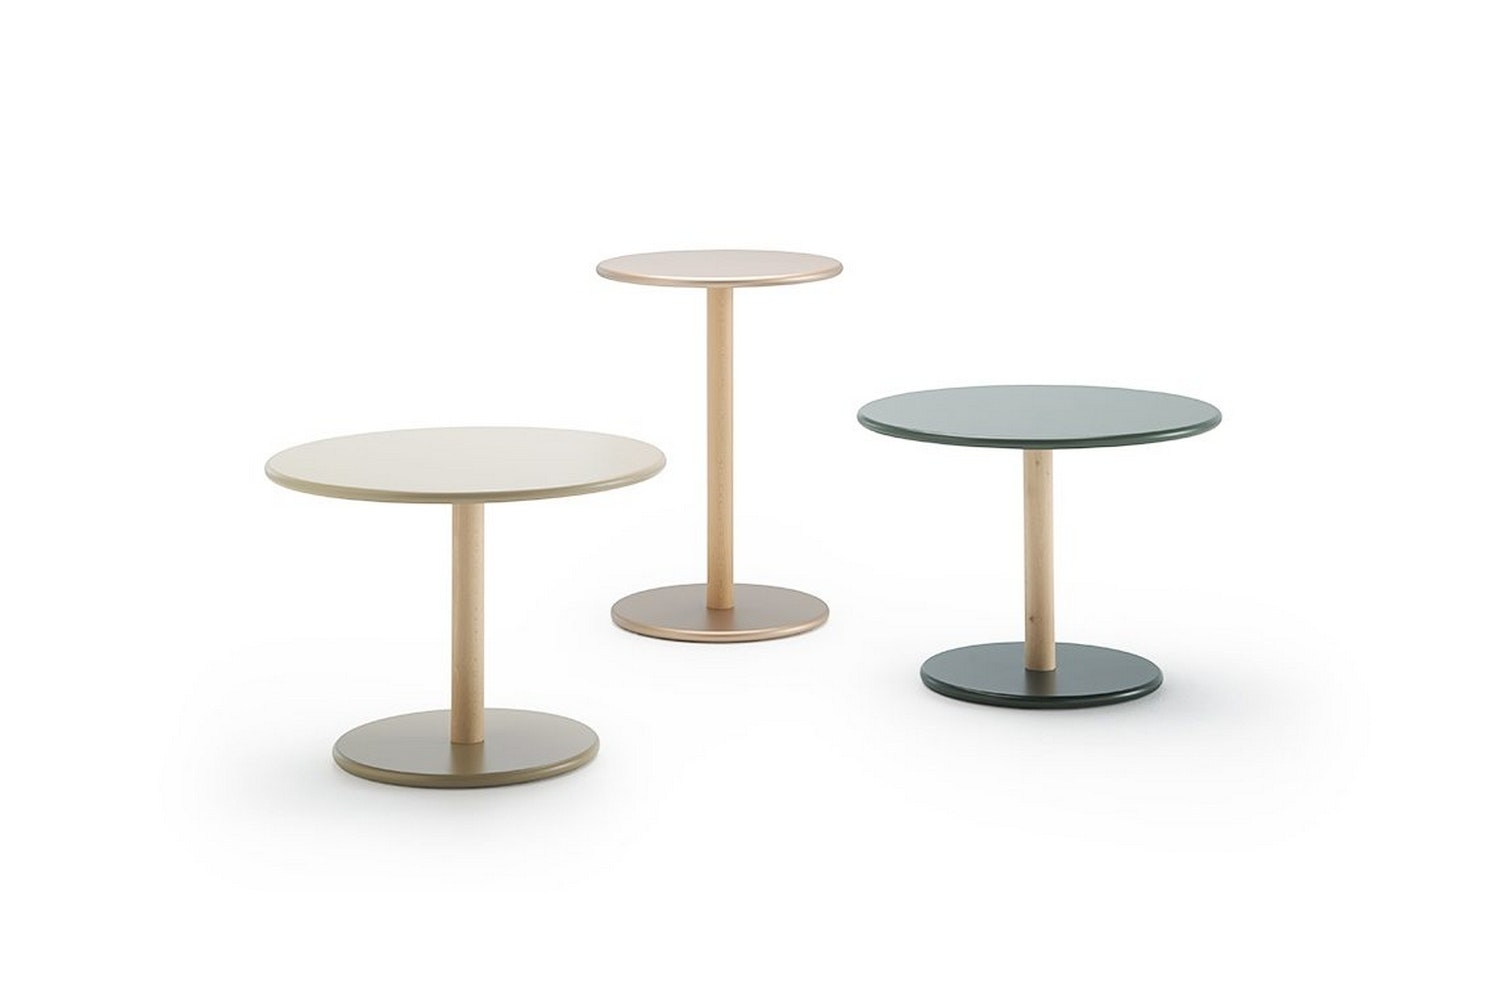 Common Table by Naoto Fukasawa for Viccarbe